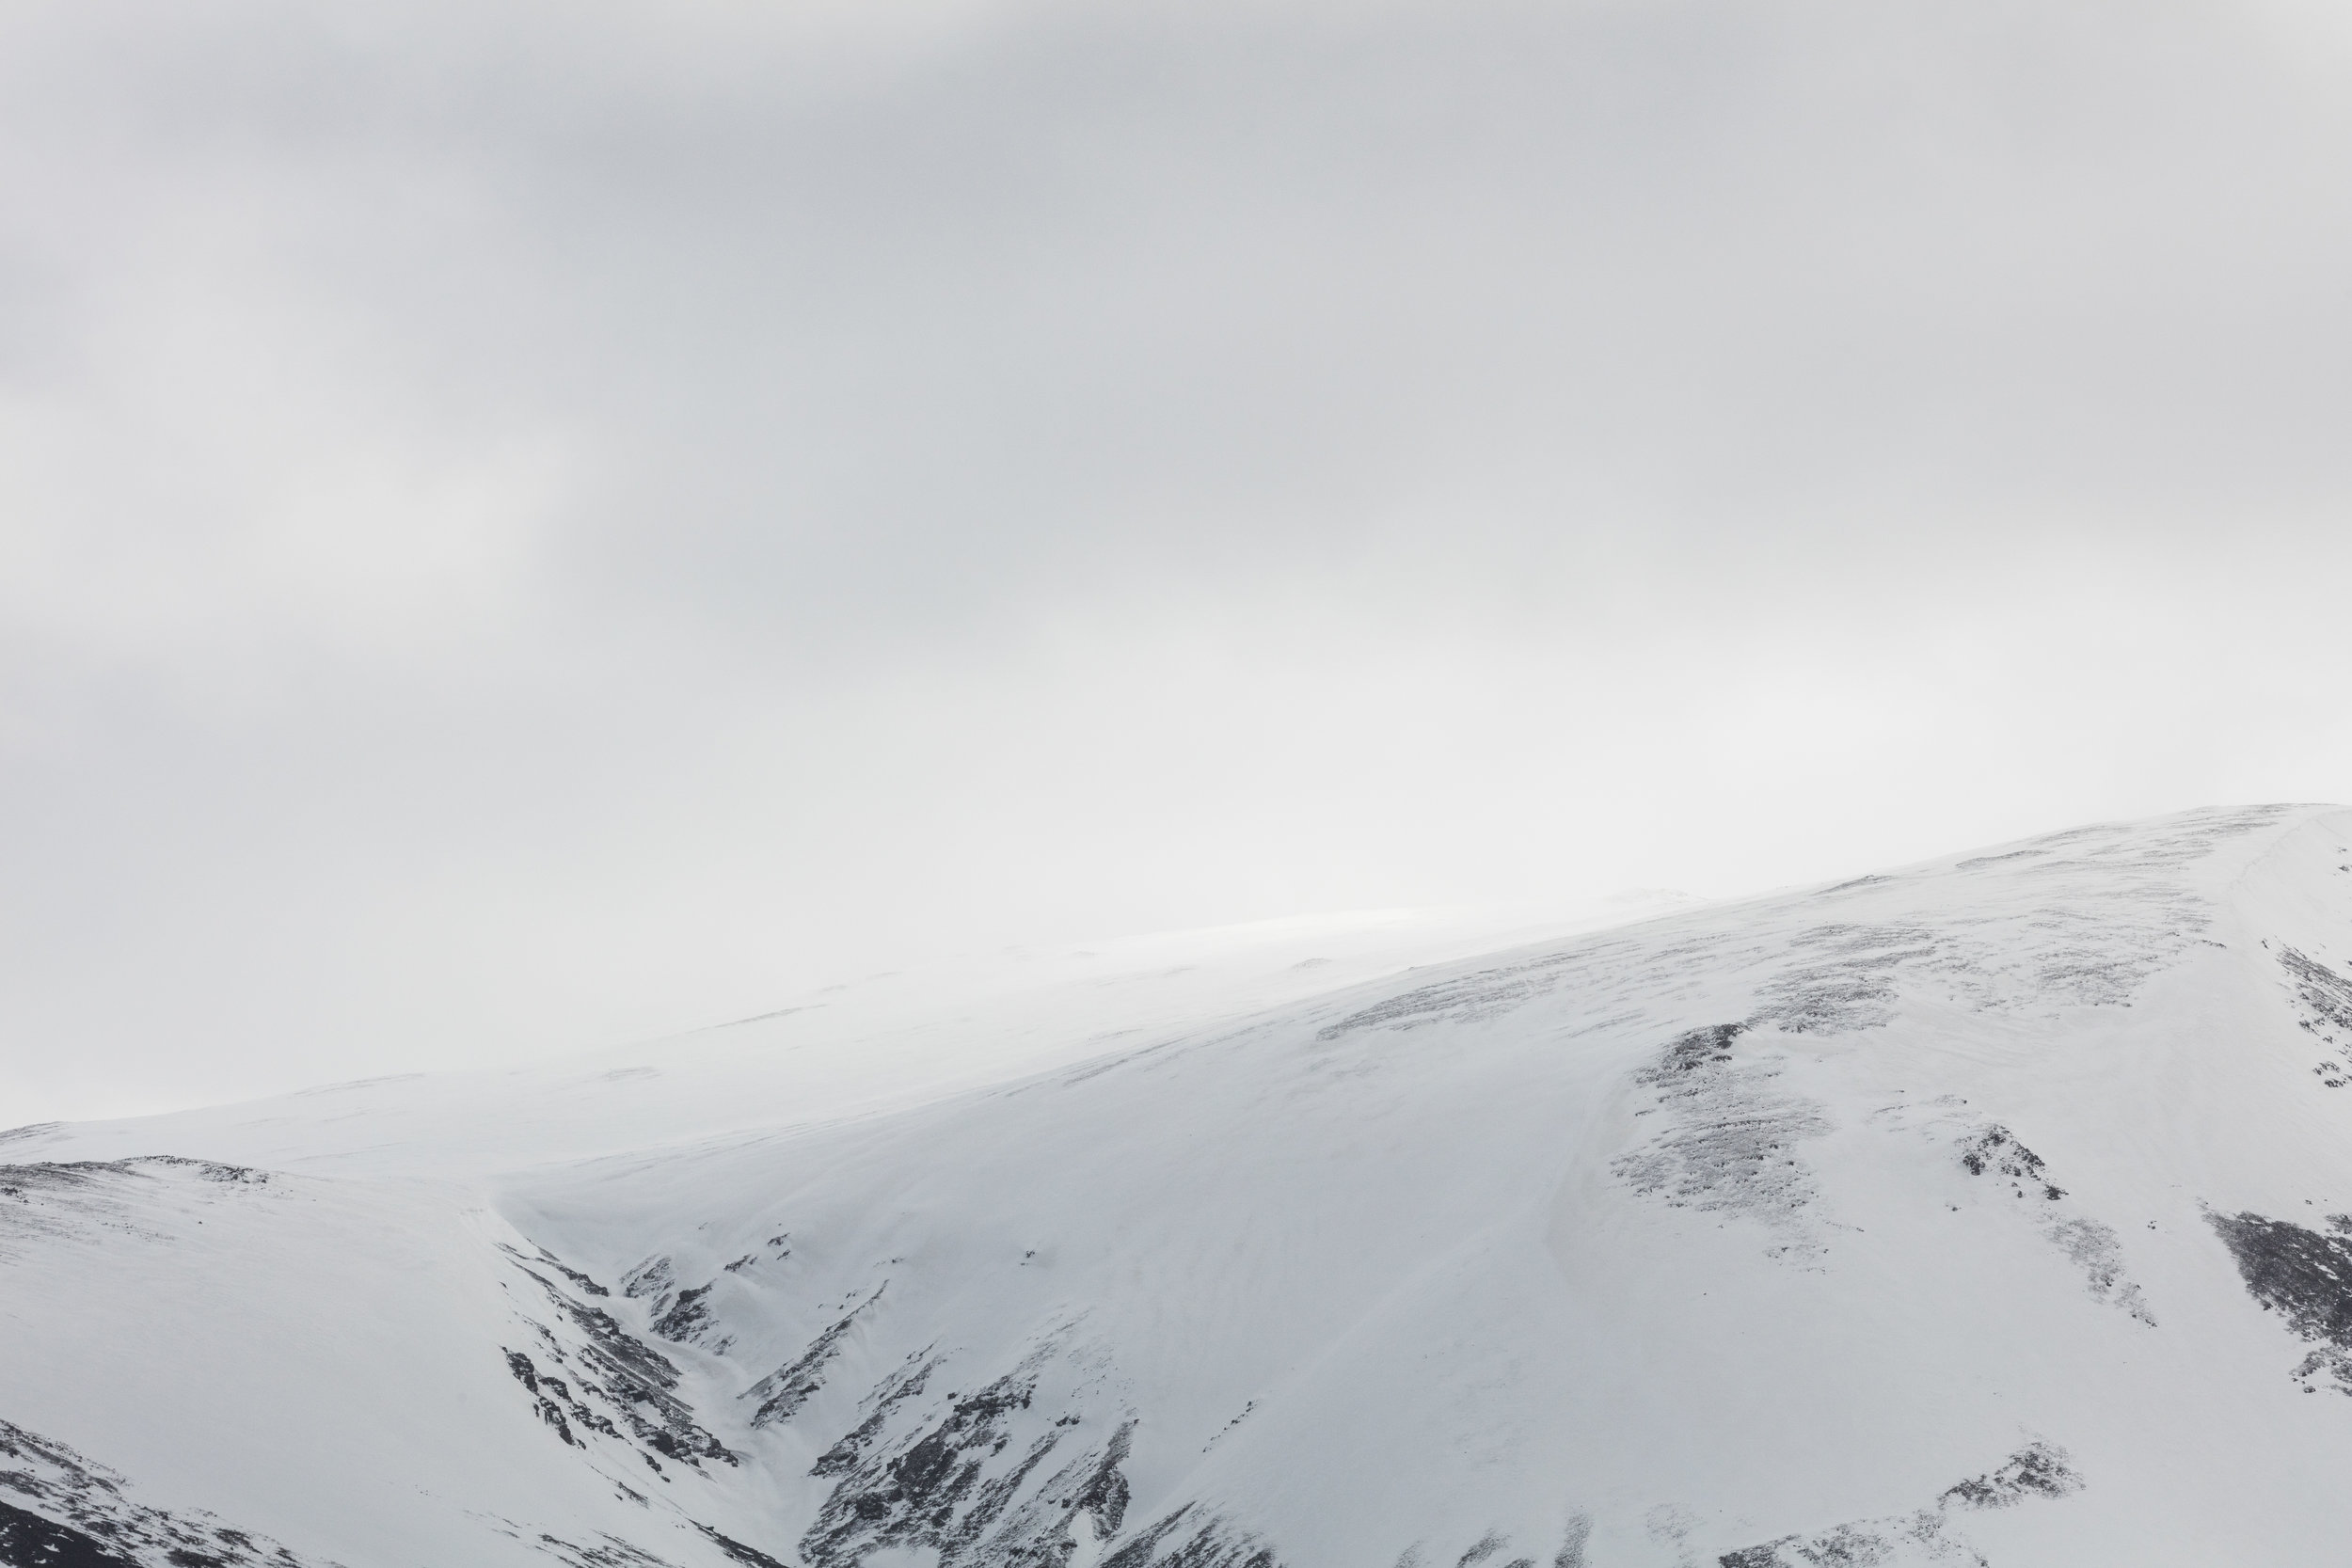 Misty Snow Capped Mountain Peaks, Iceland | The Fox Plateau - Faune